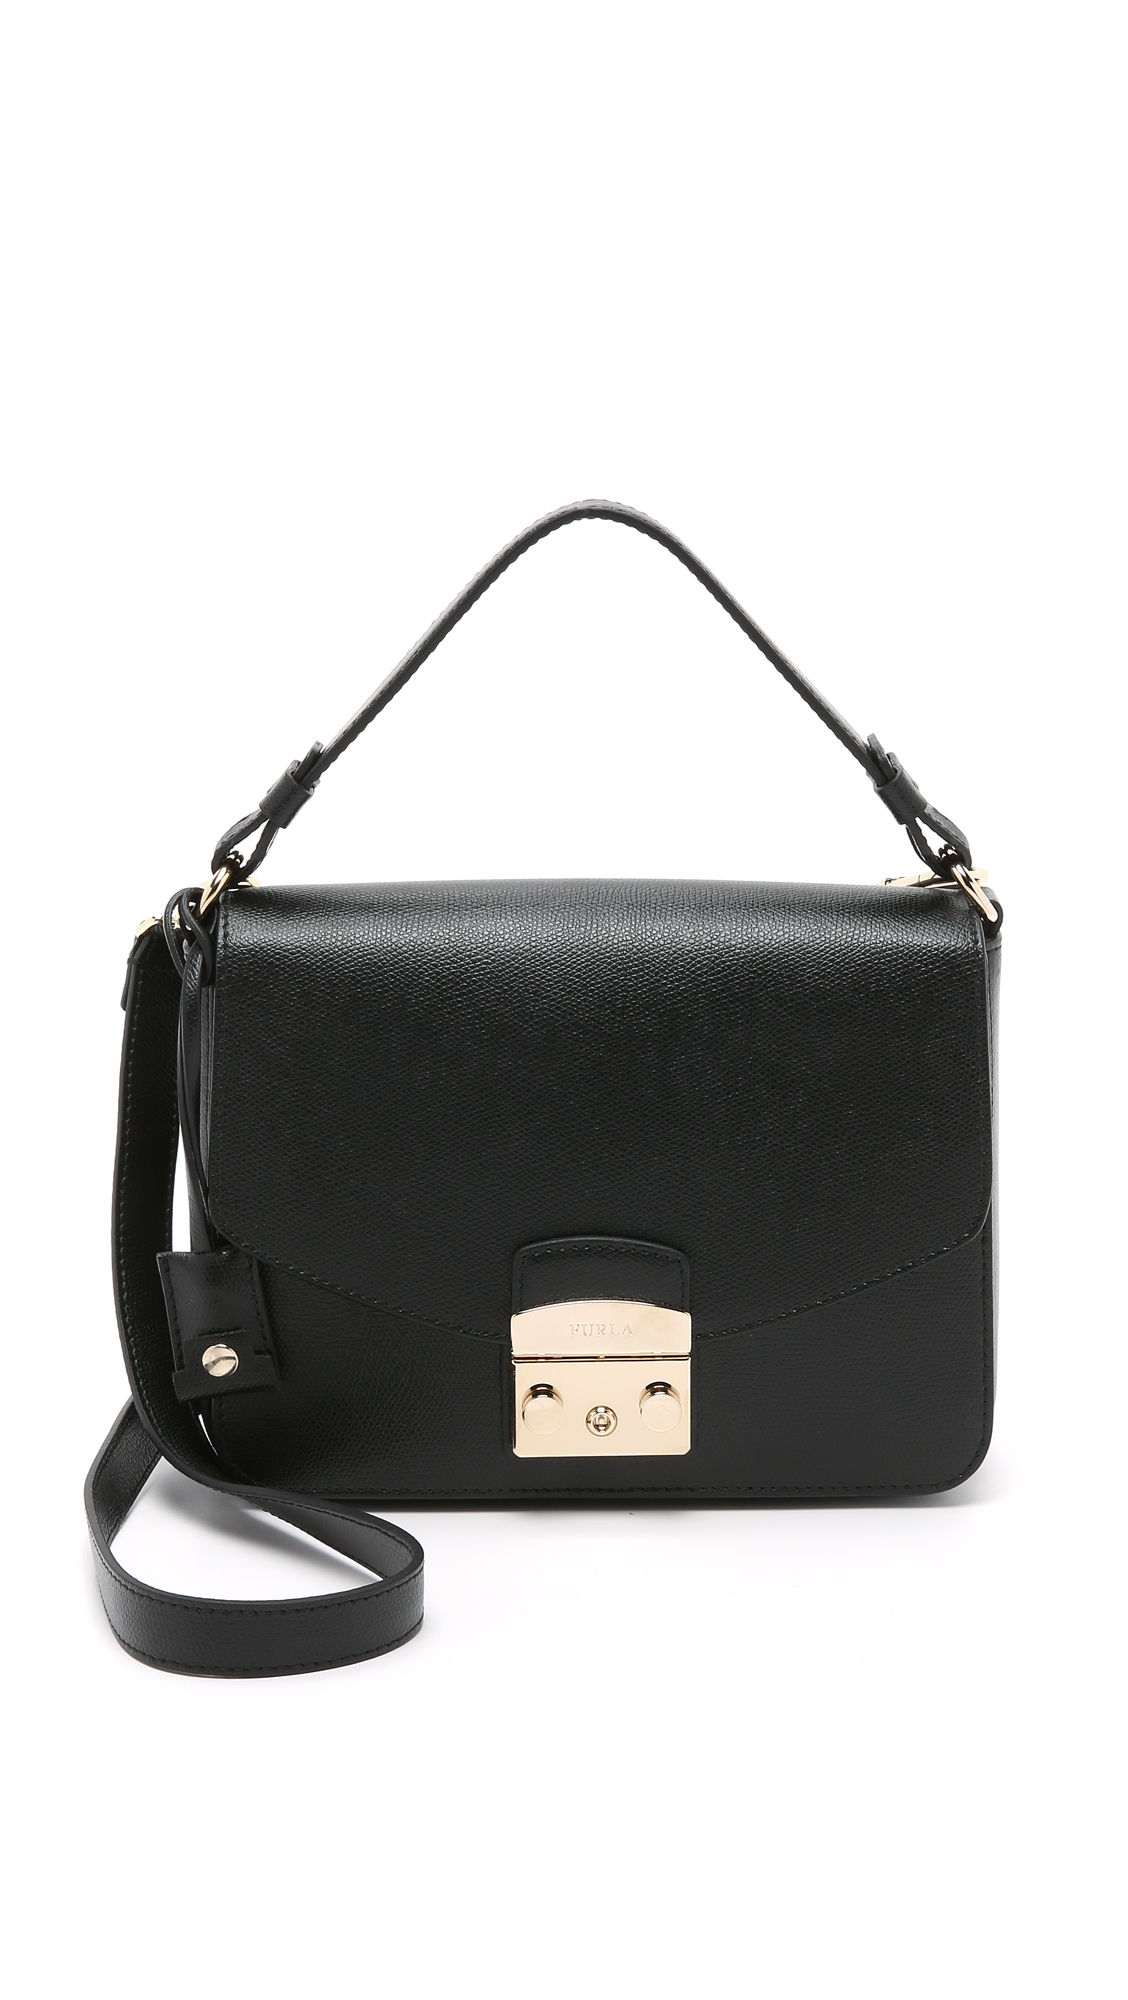 Furla Metropolis Small Shoulder Bag in Black | Lyst